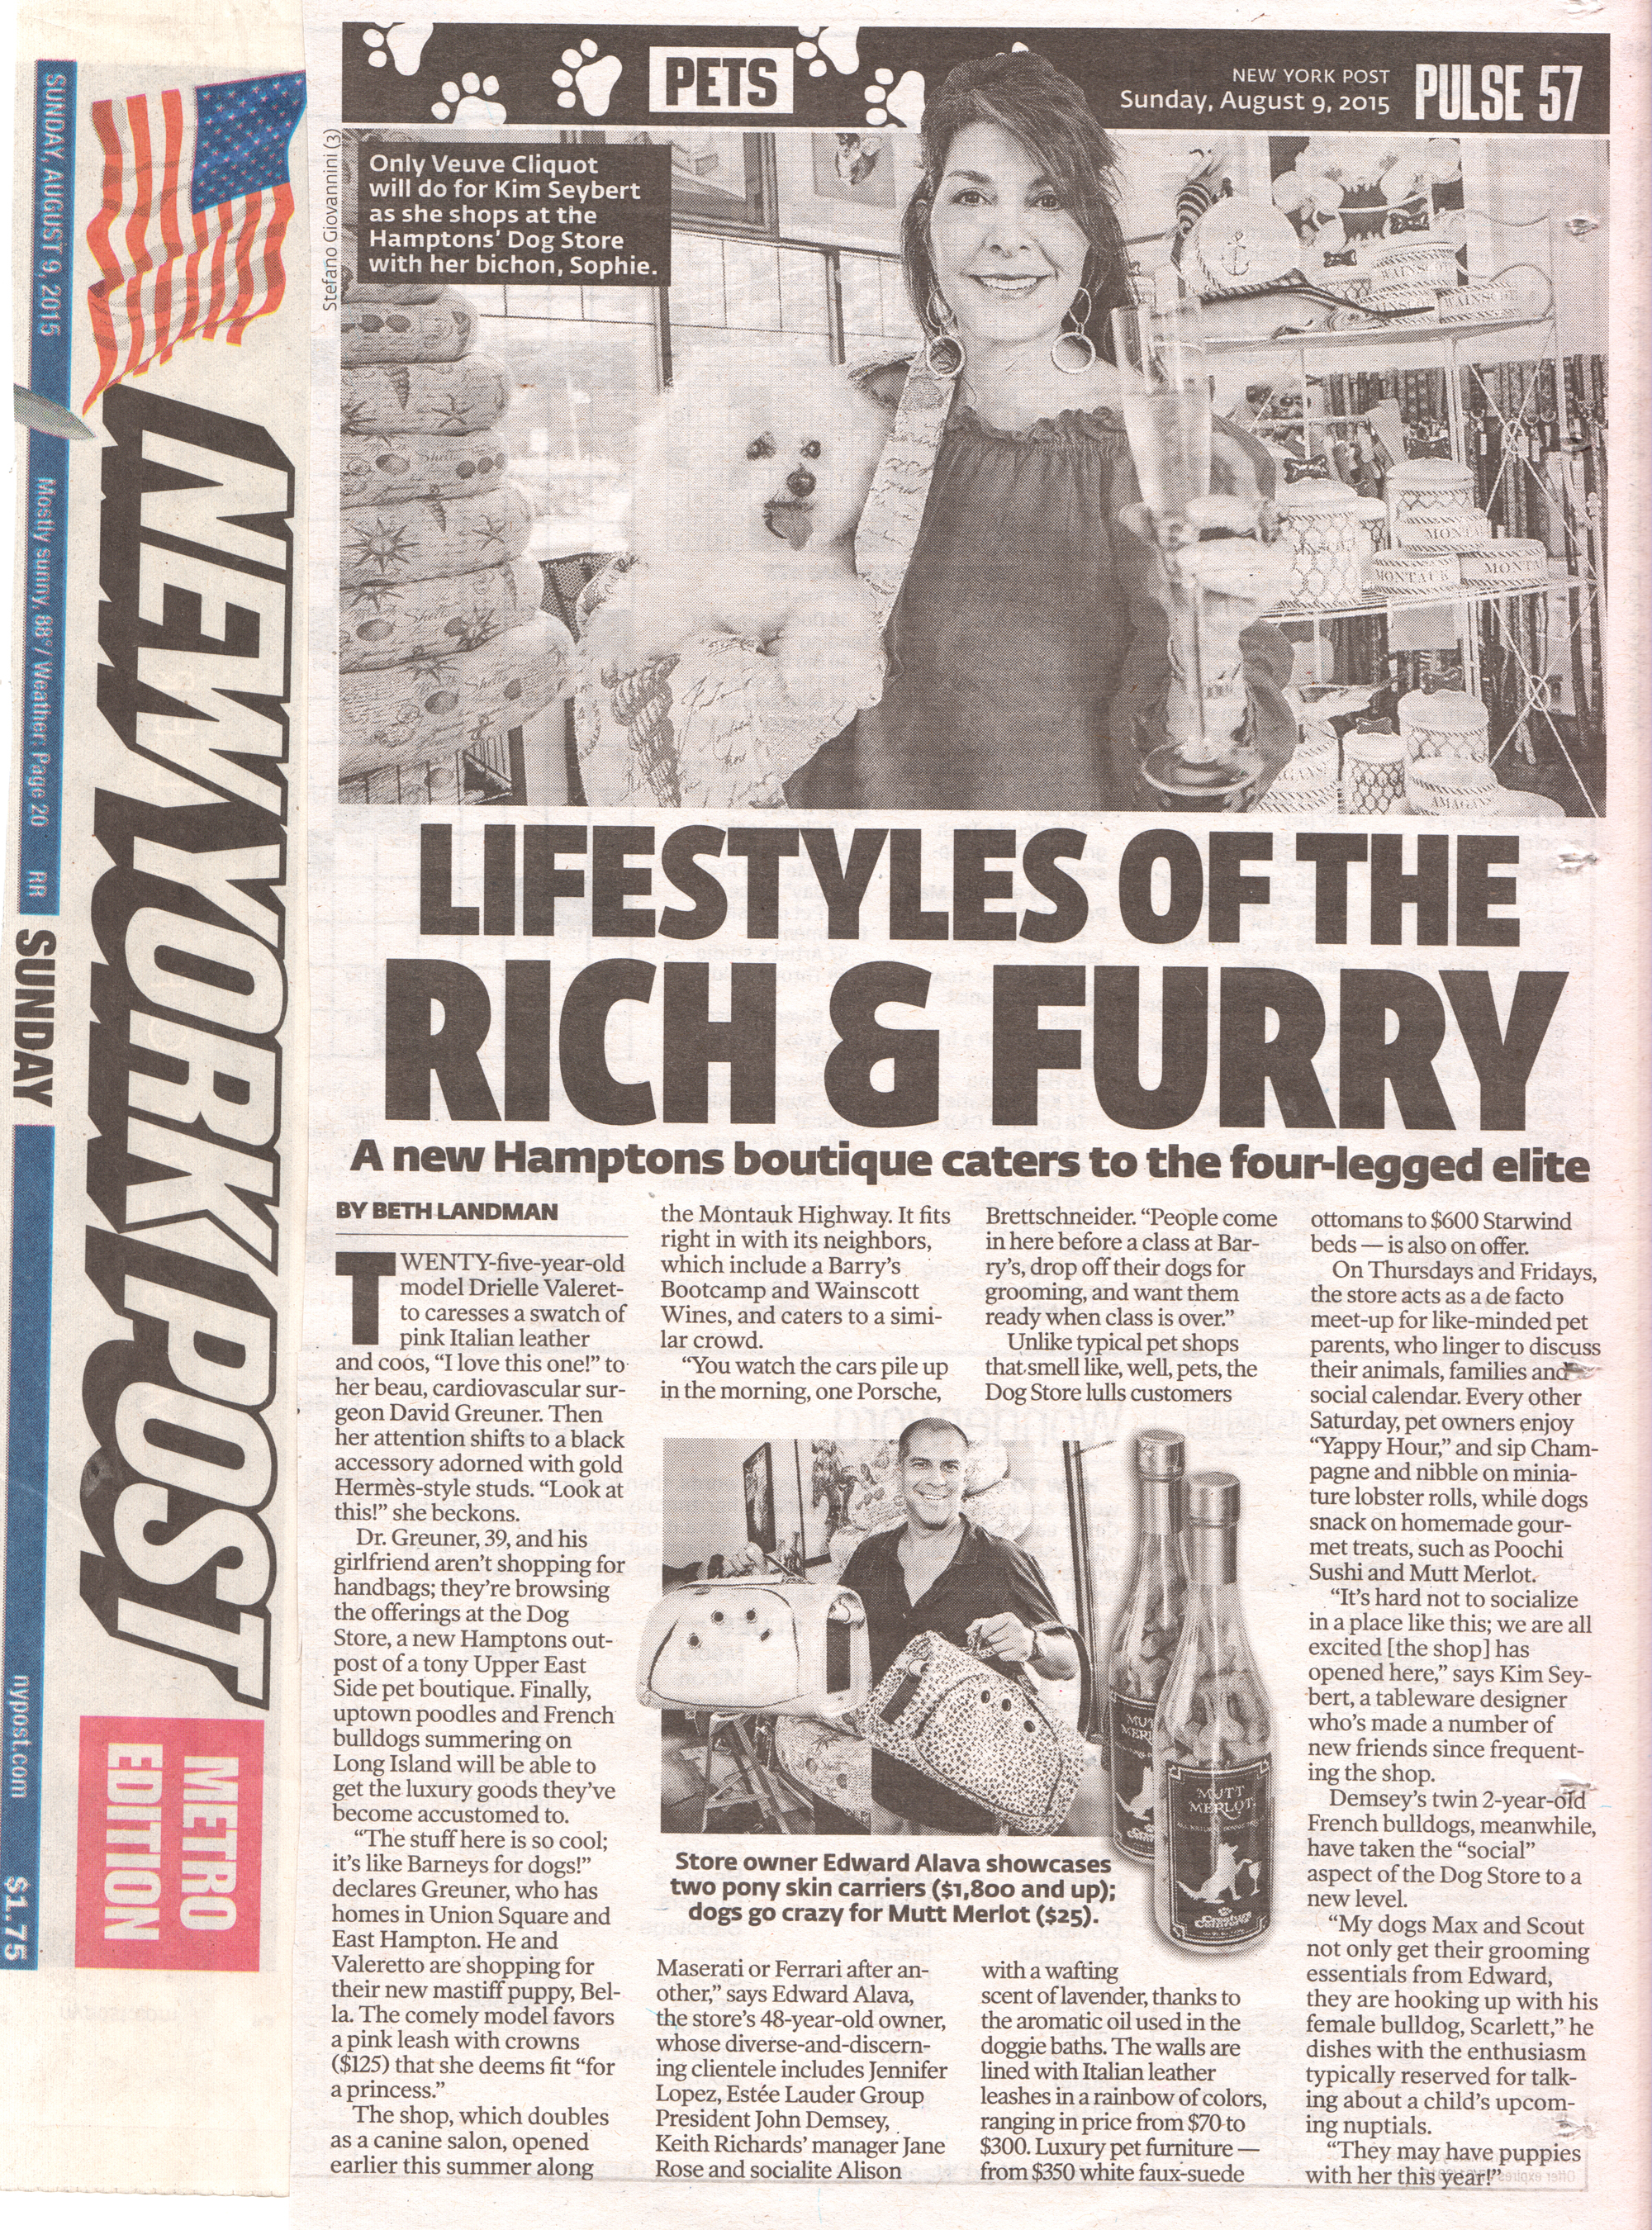 life-styles-of-the-rich-and-furry.jpg